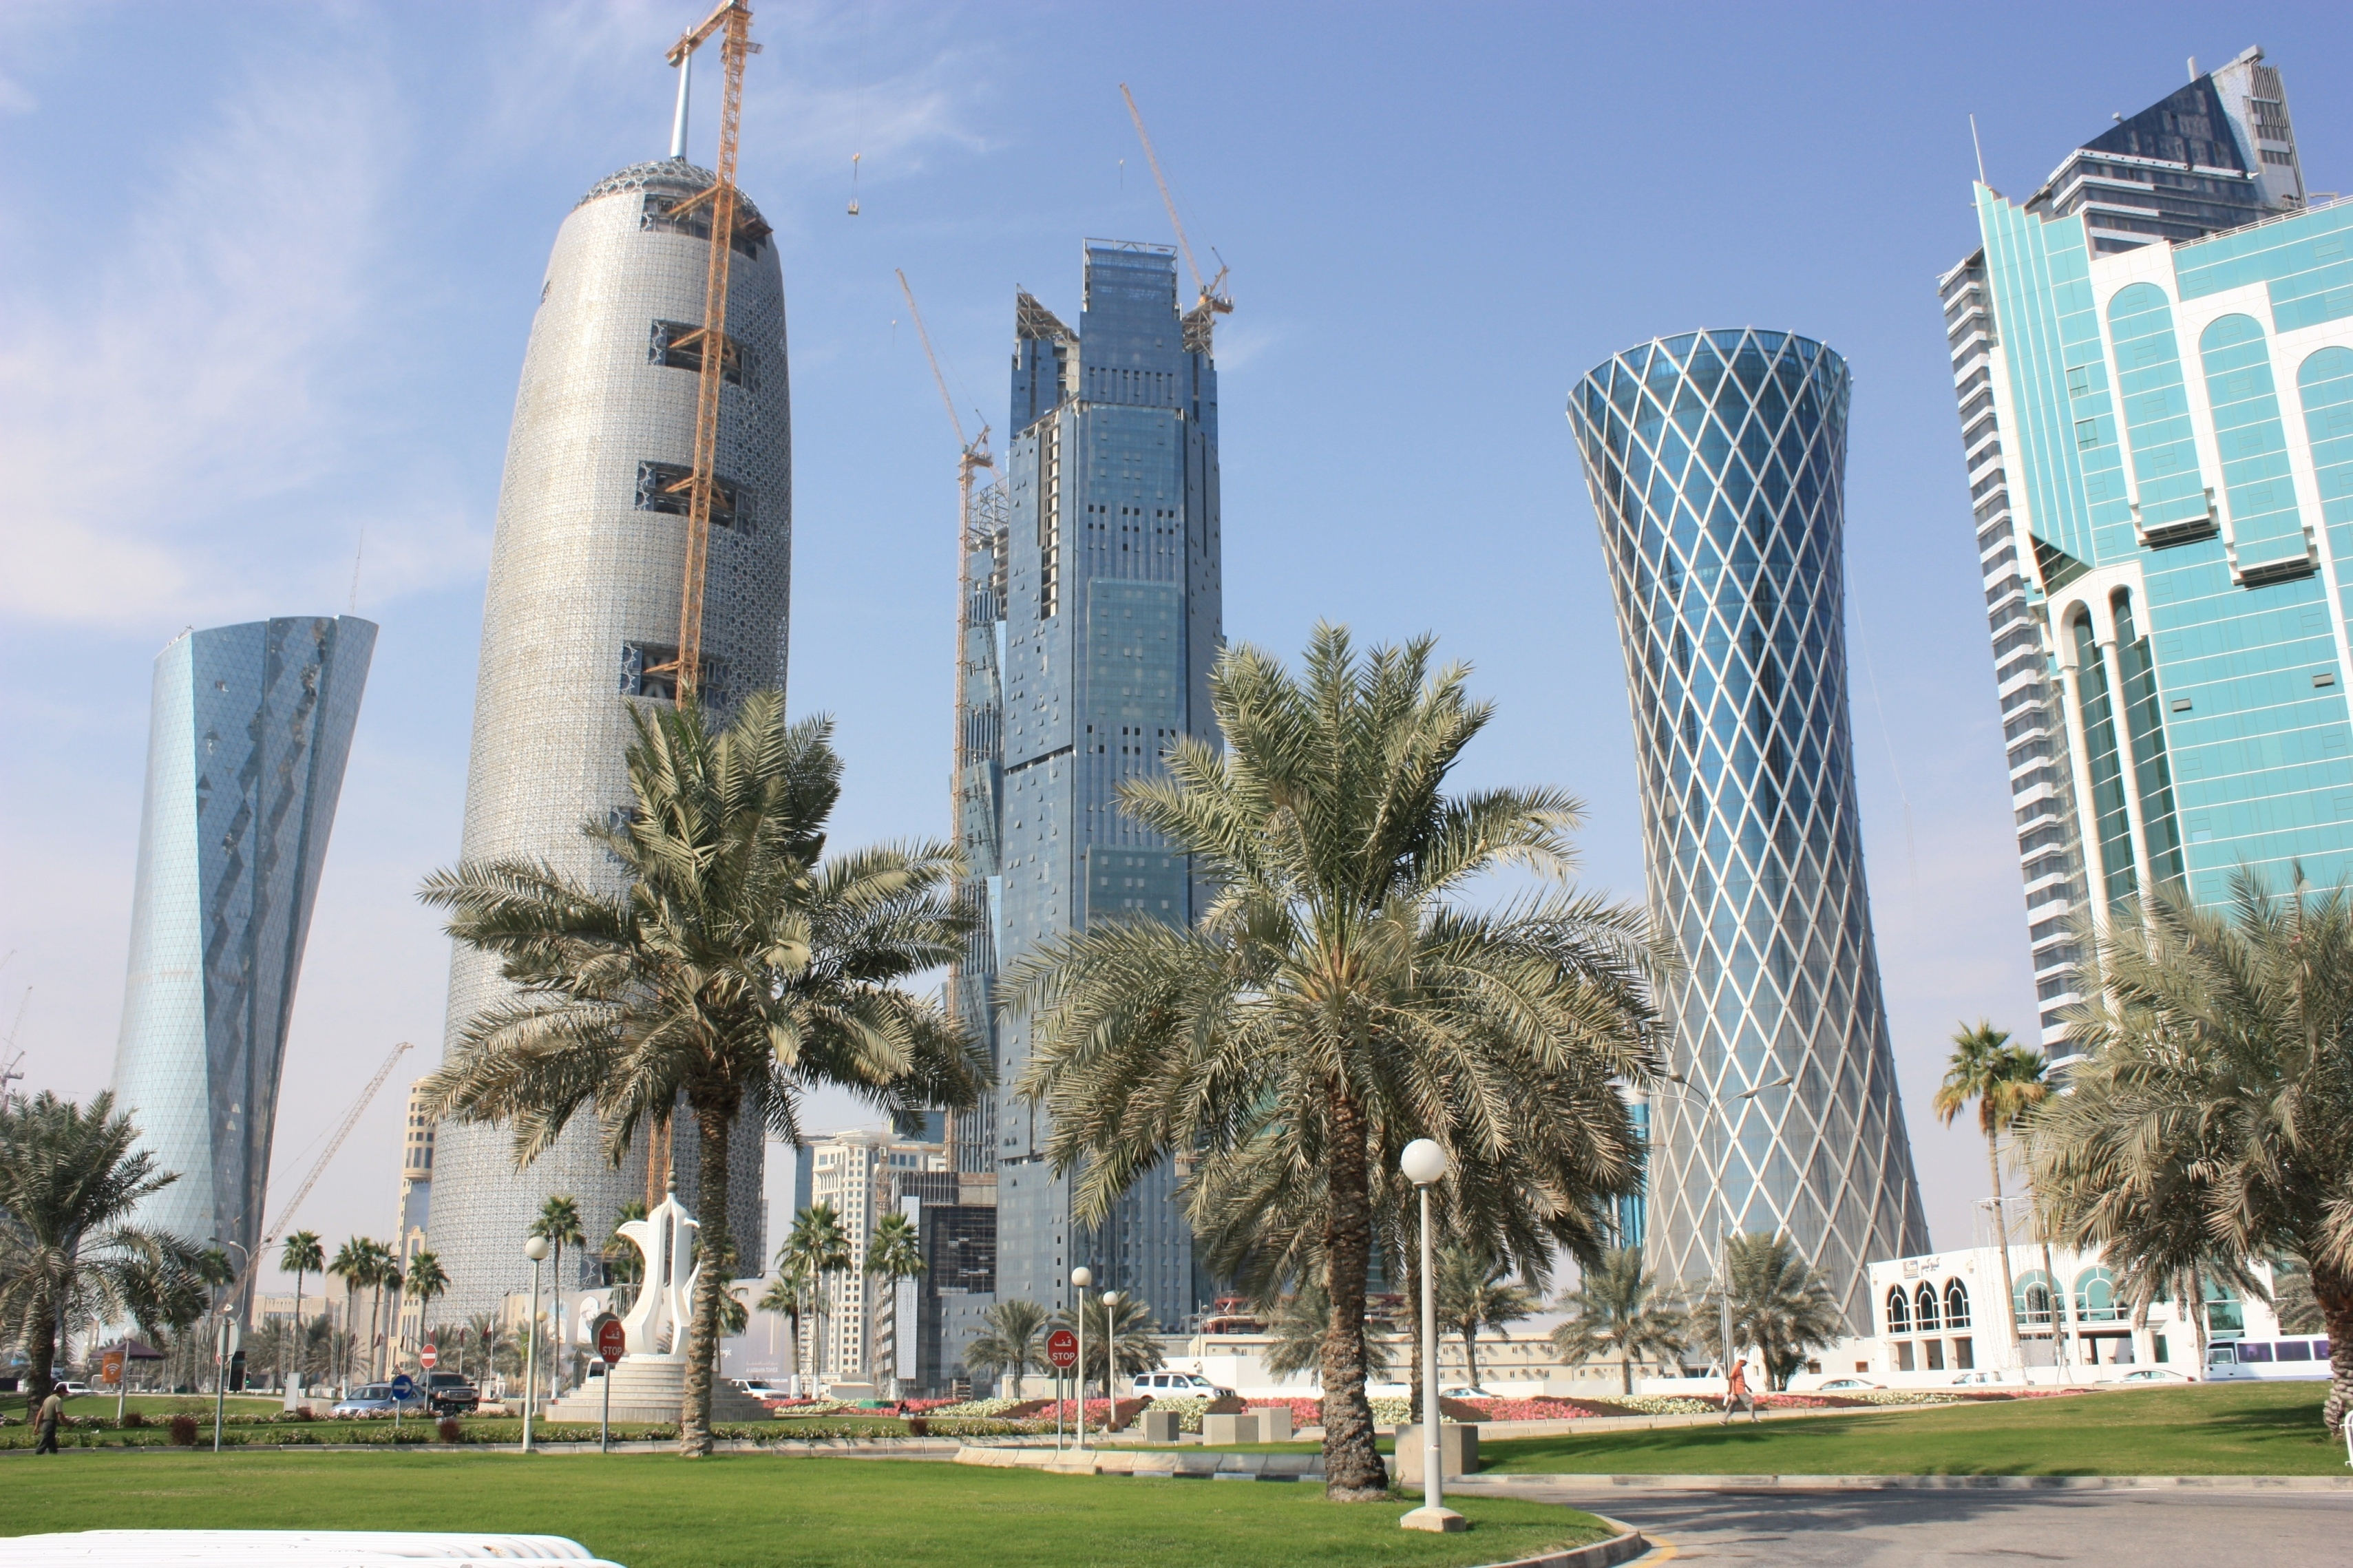 Qatar Doha City Buildings Palm Trees Skyscrapers 59476 3418x2278